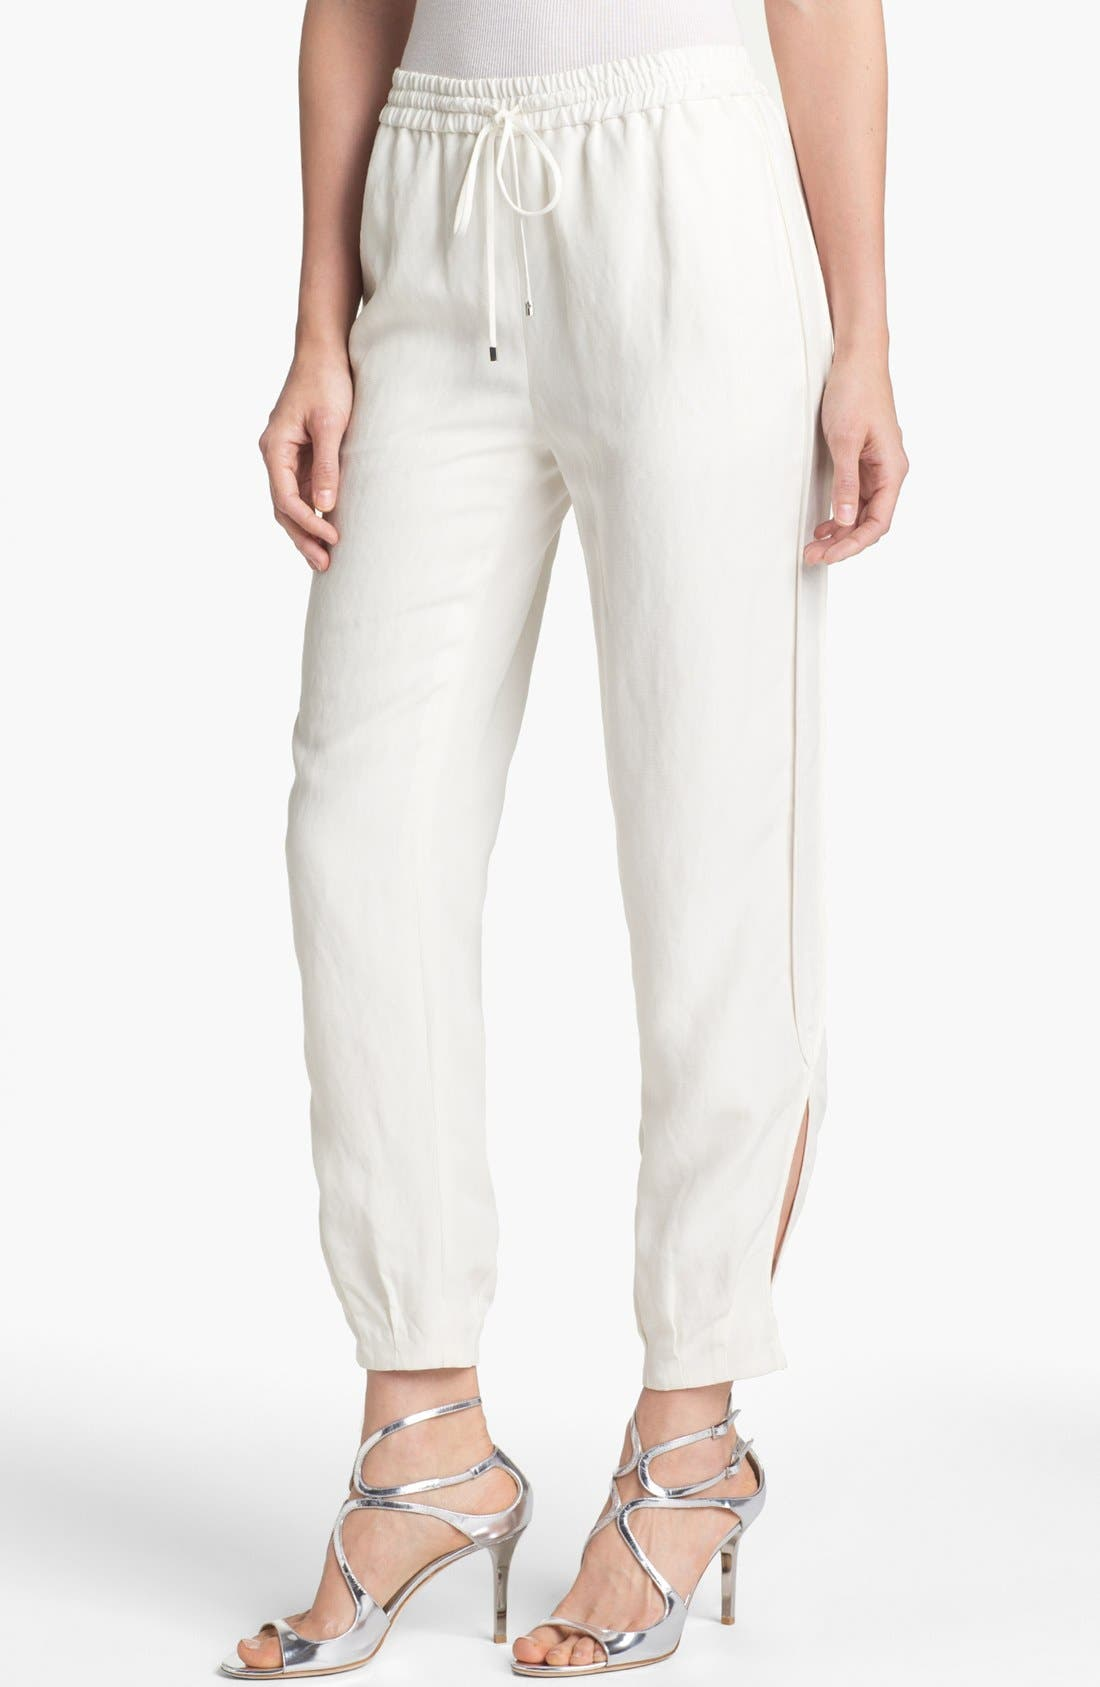 Alternate Image 1 Selected - Diane von Furstenberg 'Kamaris' Crop Pants